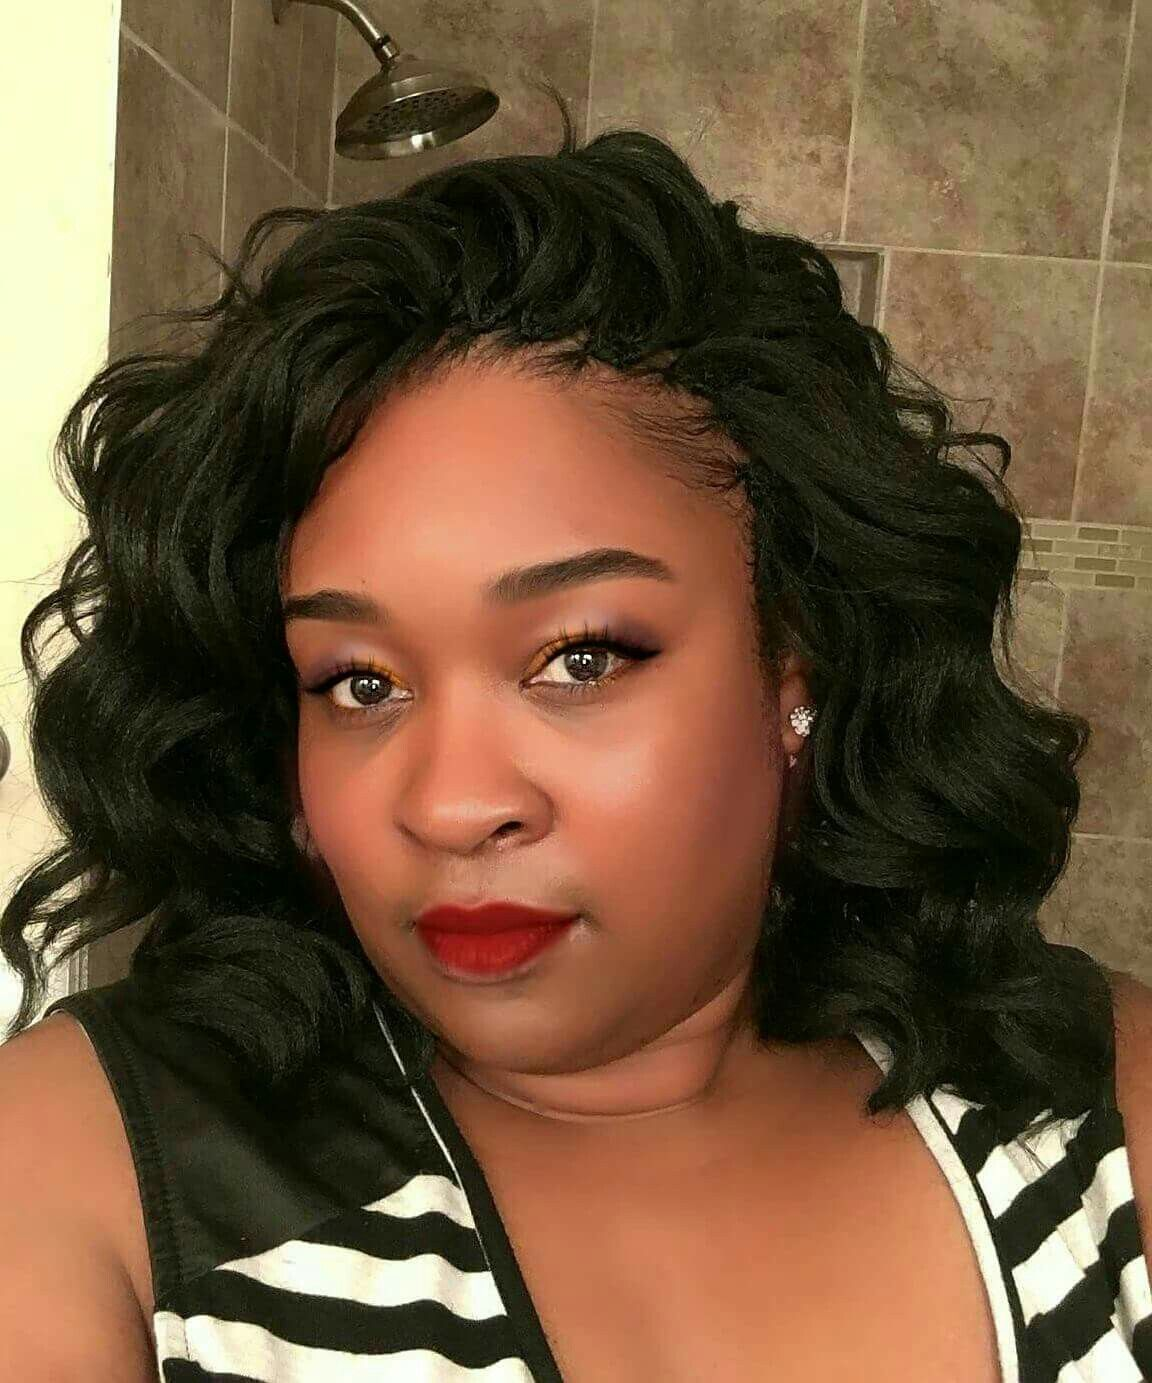 What kind of hair do you use for crochet braids - We Ve Rounded Up 40 Stunning Crochet Braids With Human Hair To Inspire And Help You Find Your Next Do